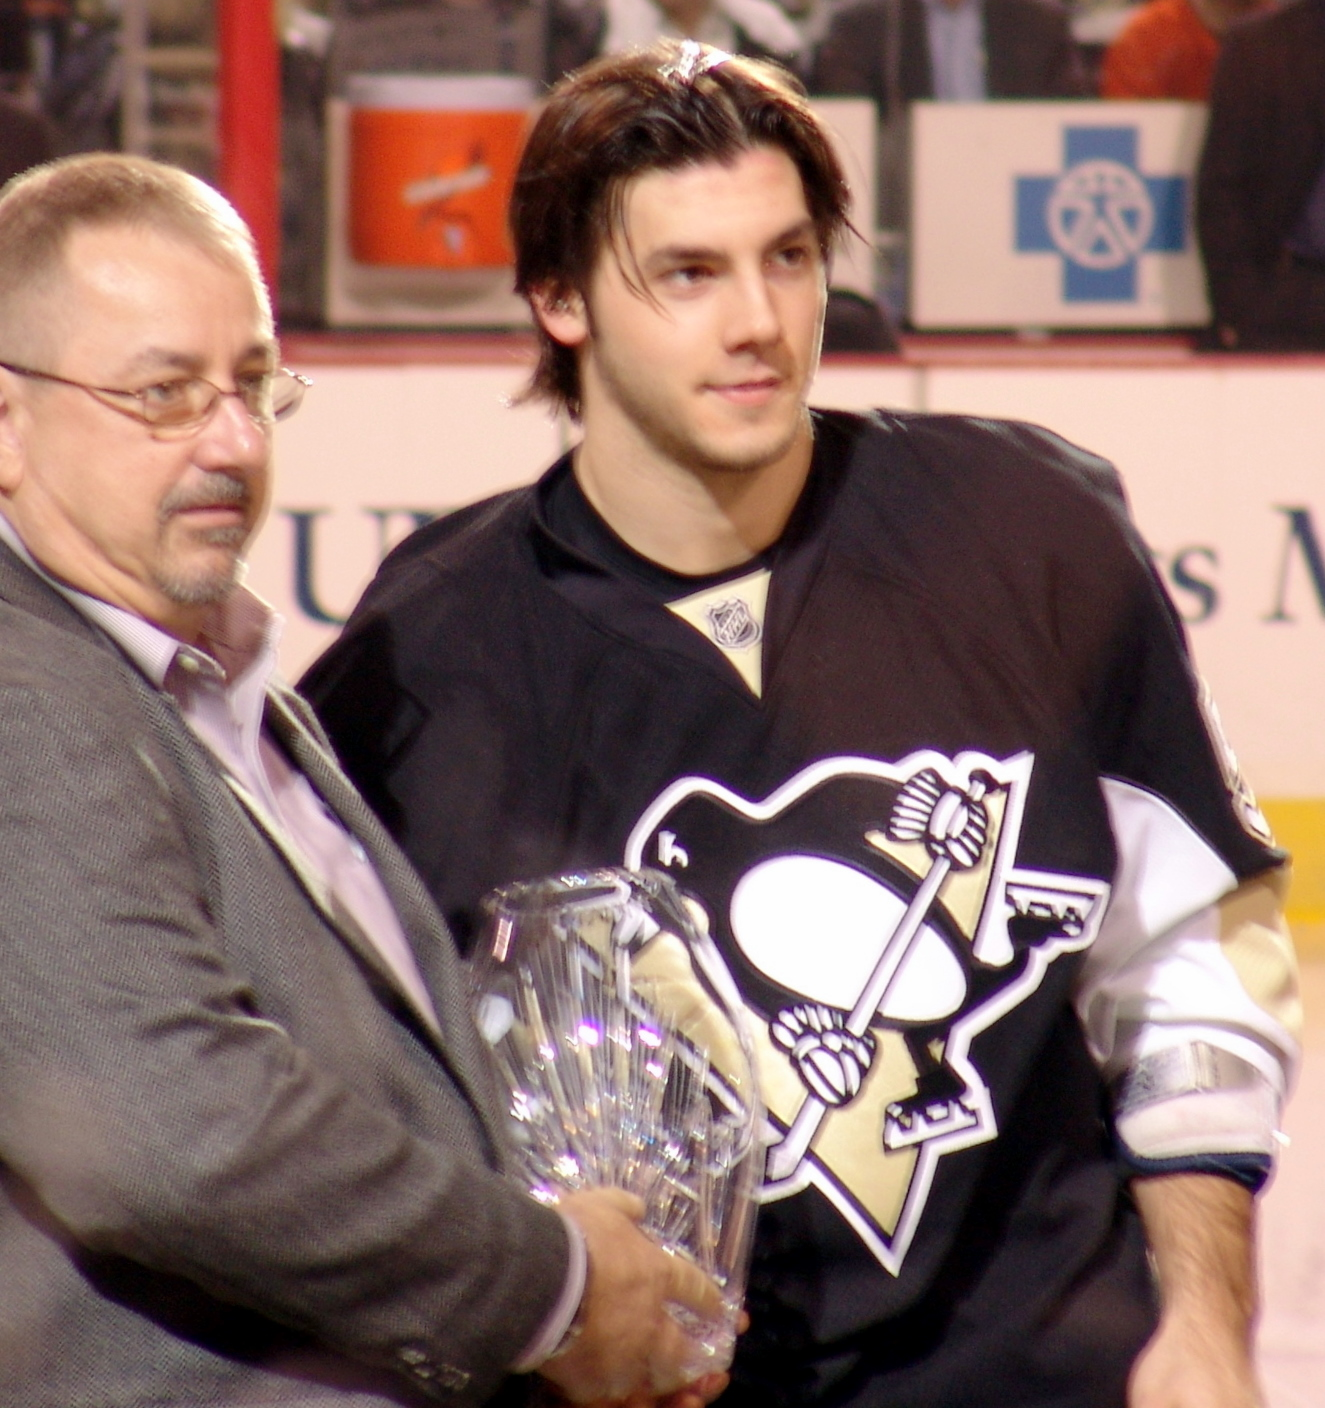 Kris Letang voted best hair in NHL